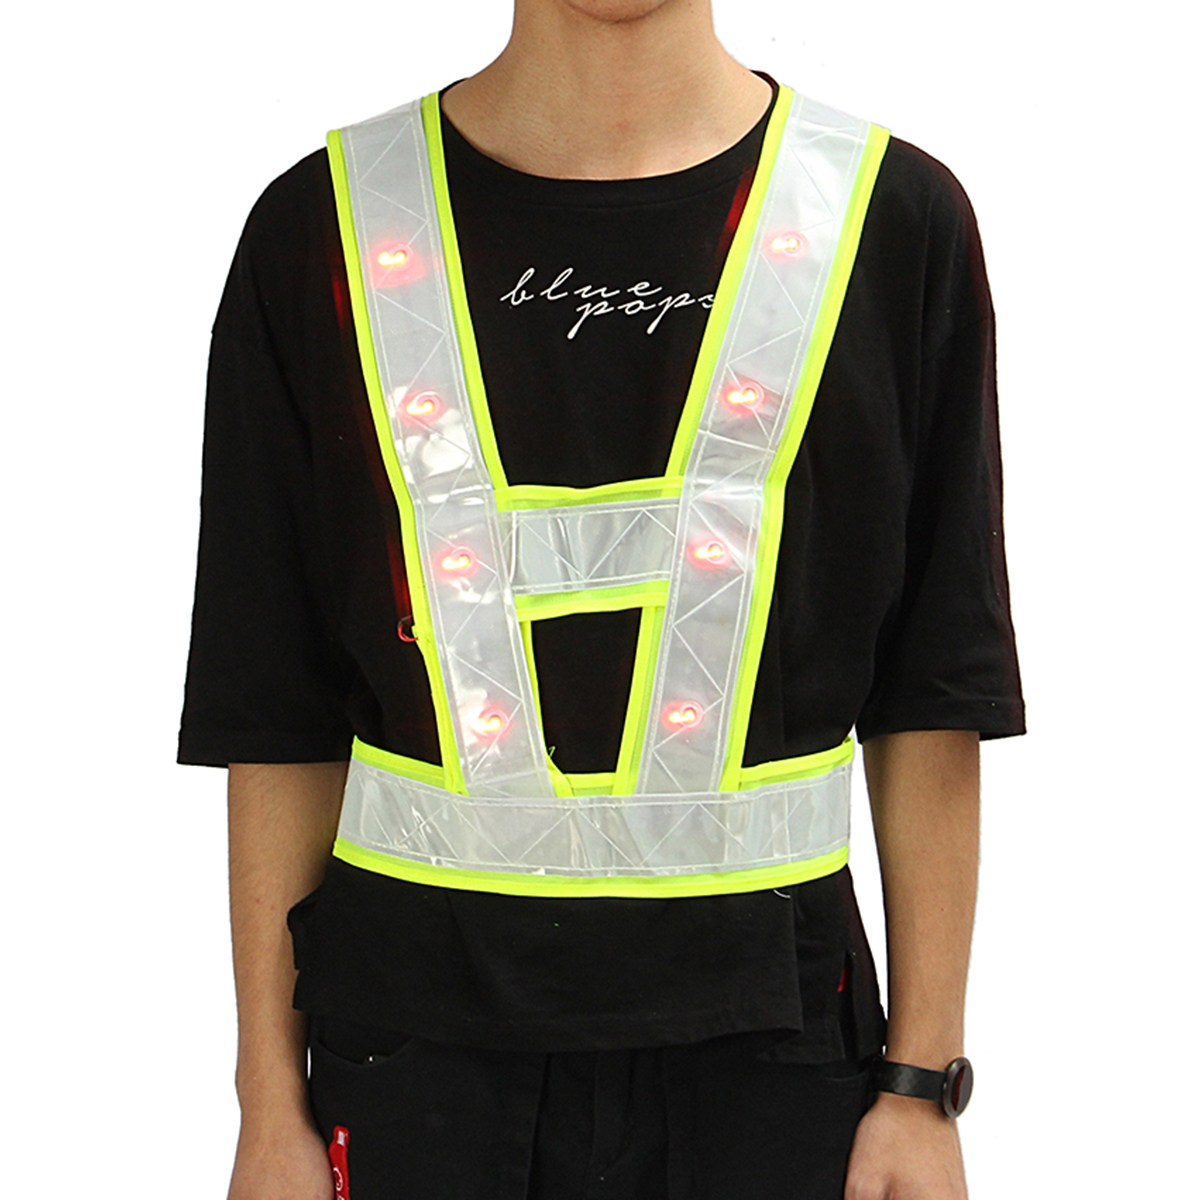 NEW Safurance Cycling Running 16 LED Light Up Reflective Stripes Safety Vest High Visibility Workplace Safety Clothing